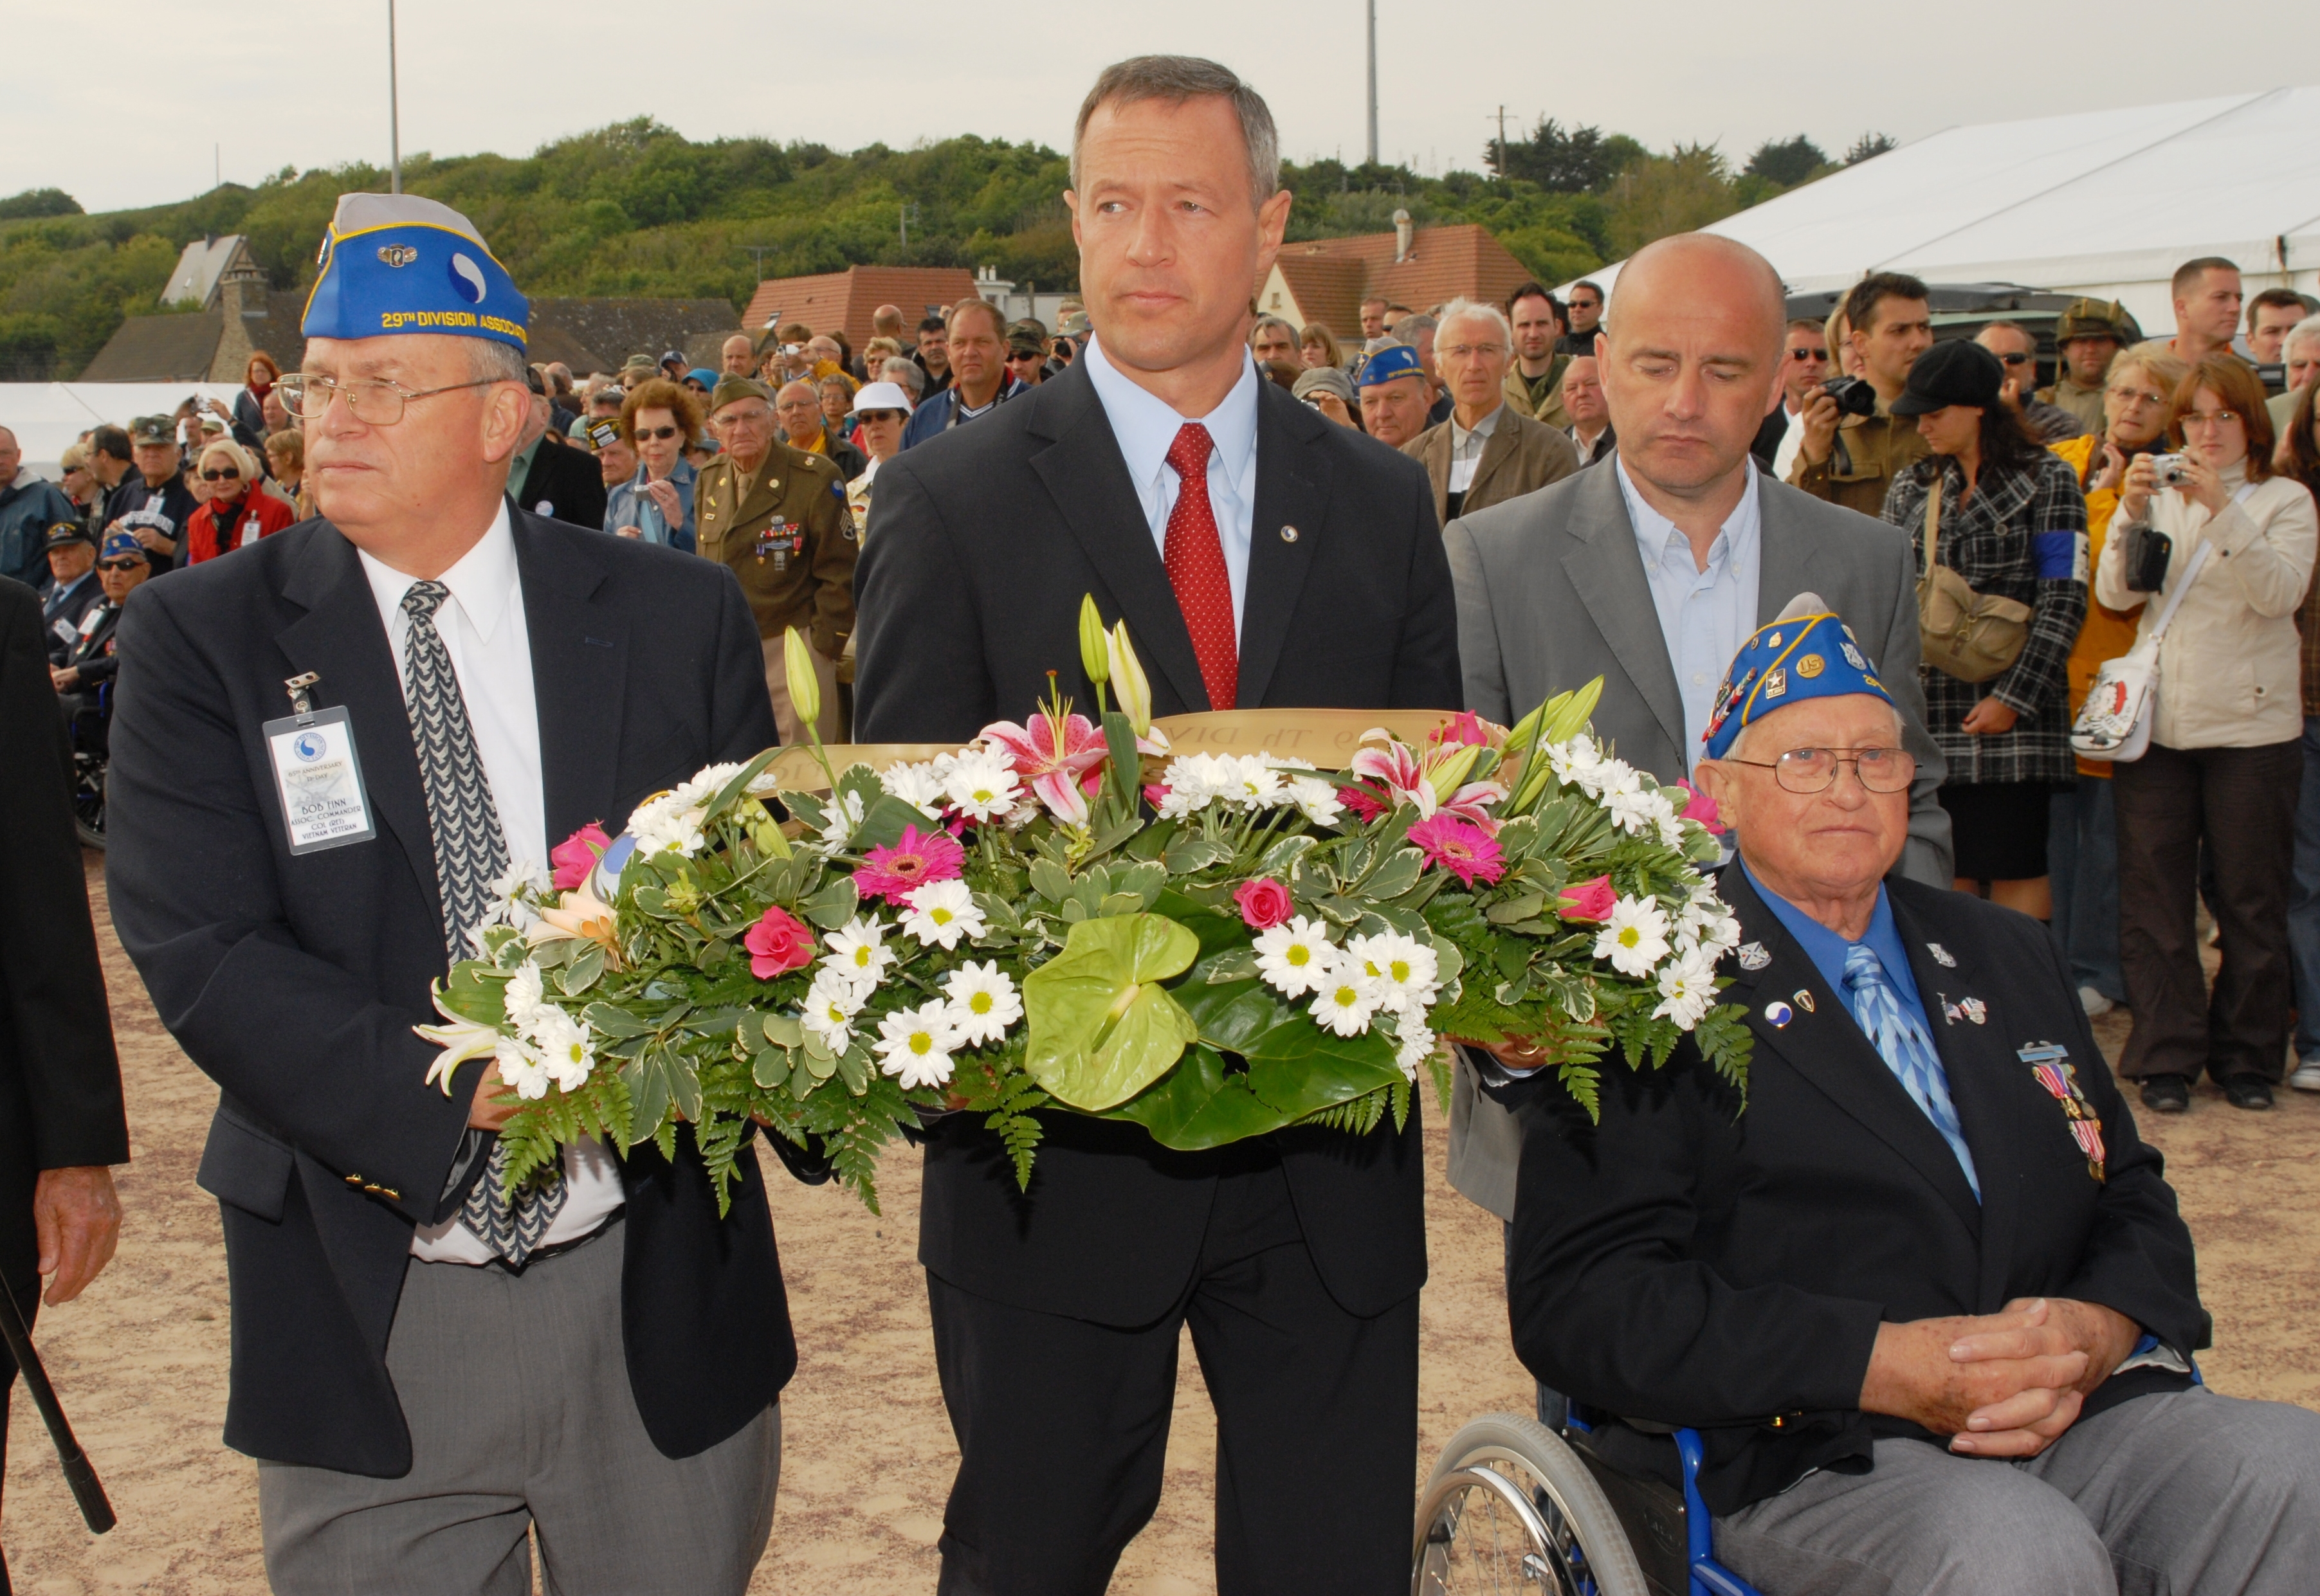 Governor OMalley Joins President Obama World Leaders For 65th Anniversary Of D Day